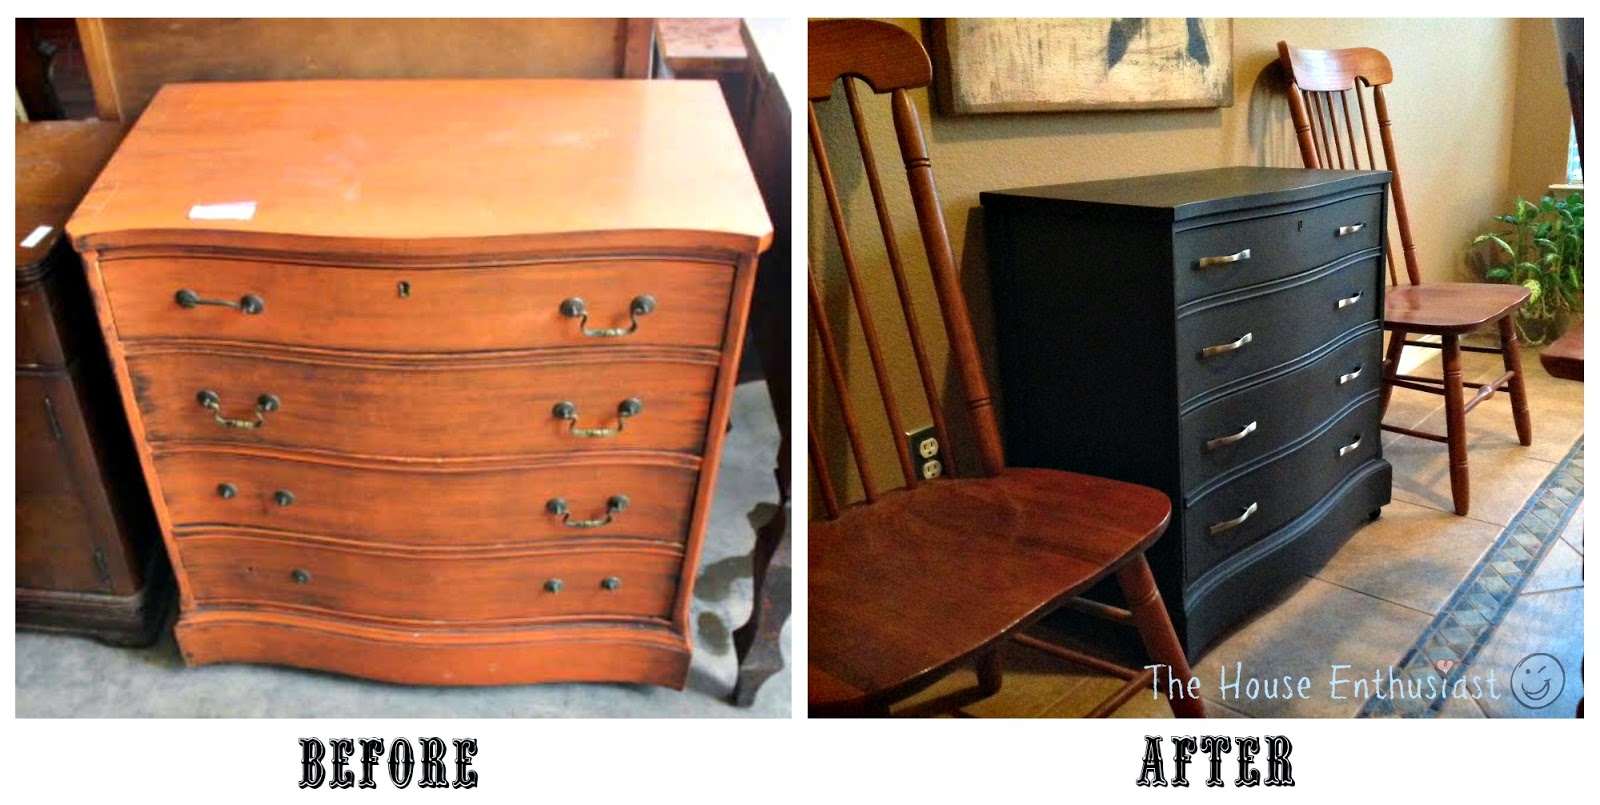 The House Enthusiast Dresser Makeover Before And After